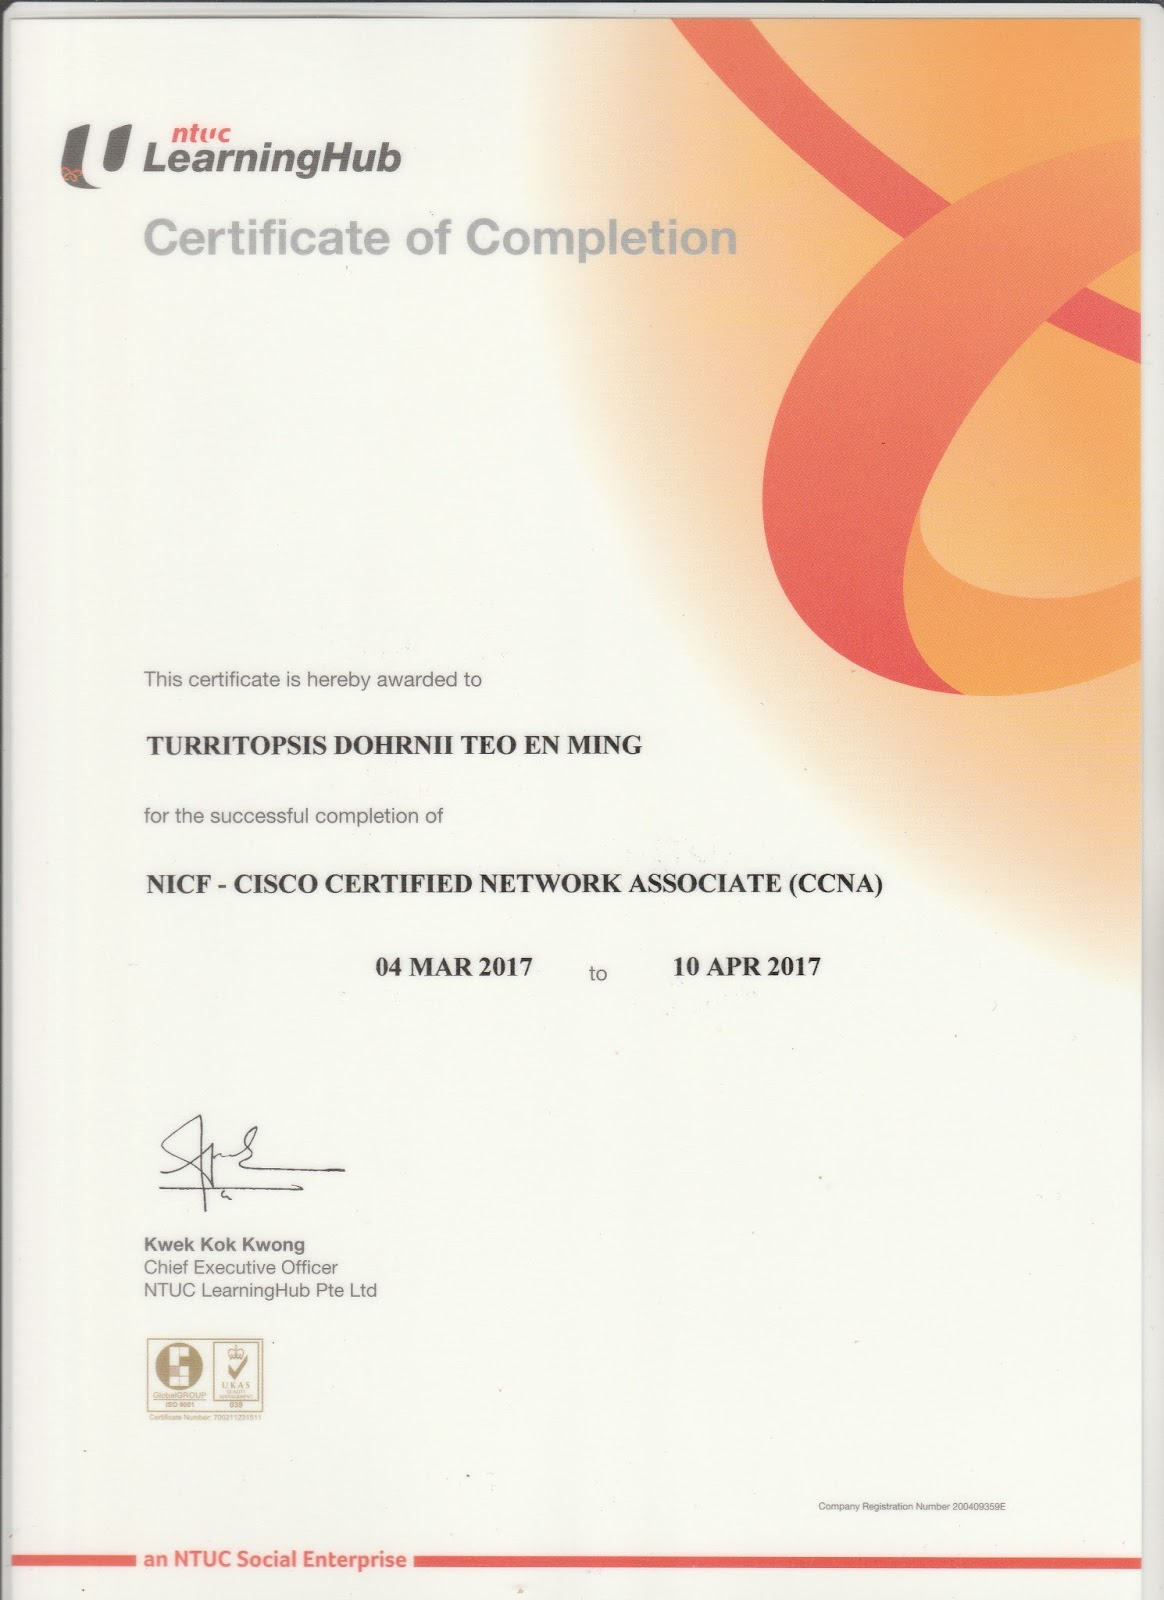 Nicf Ccna Certificate Of Completion